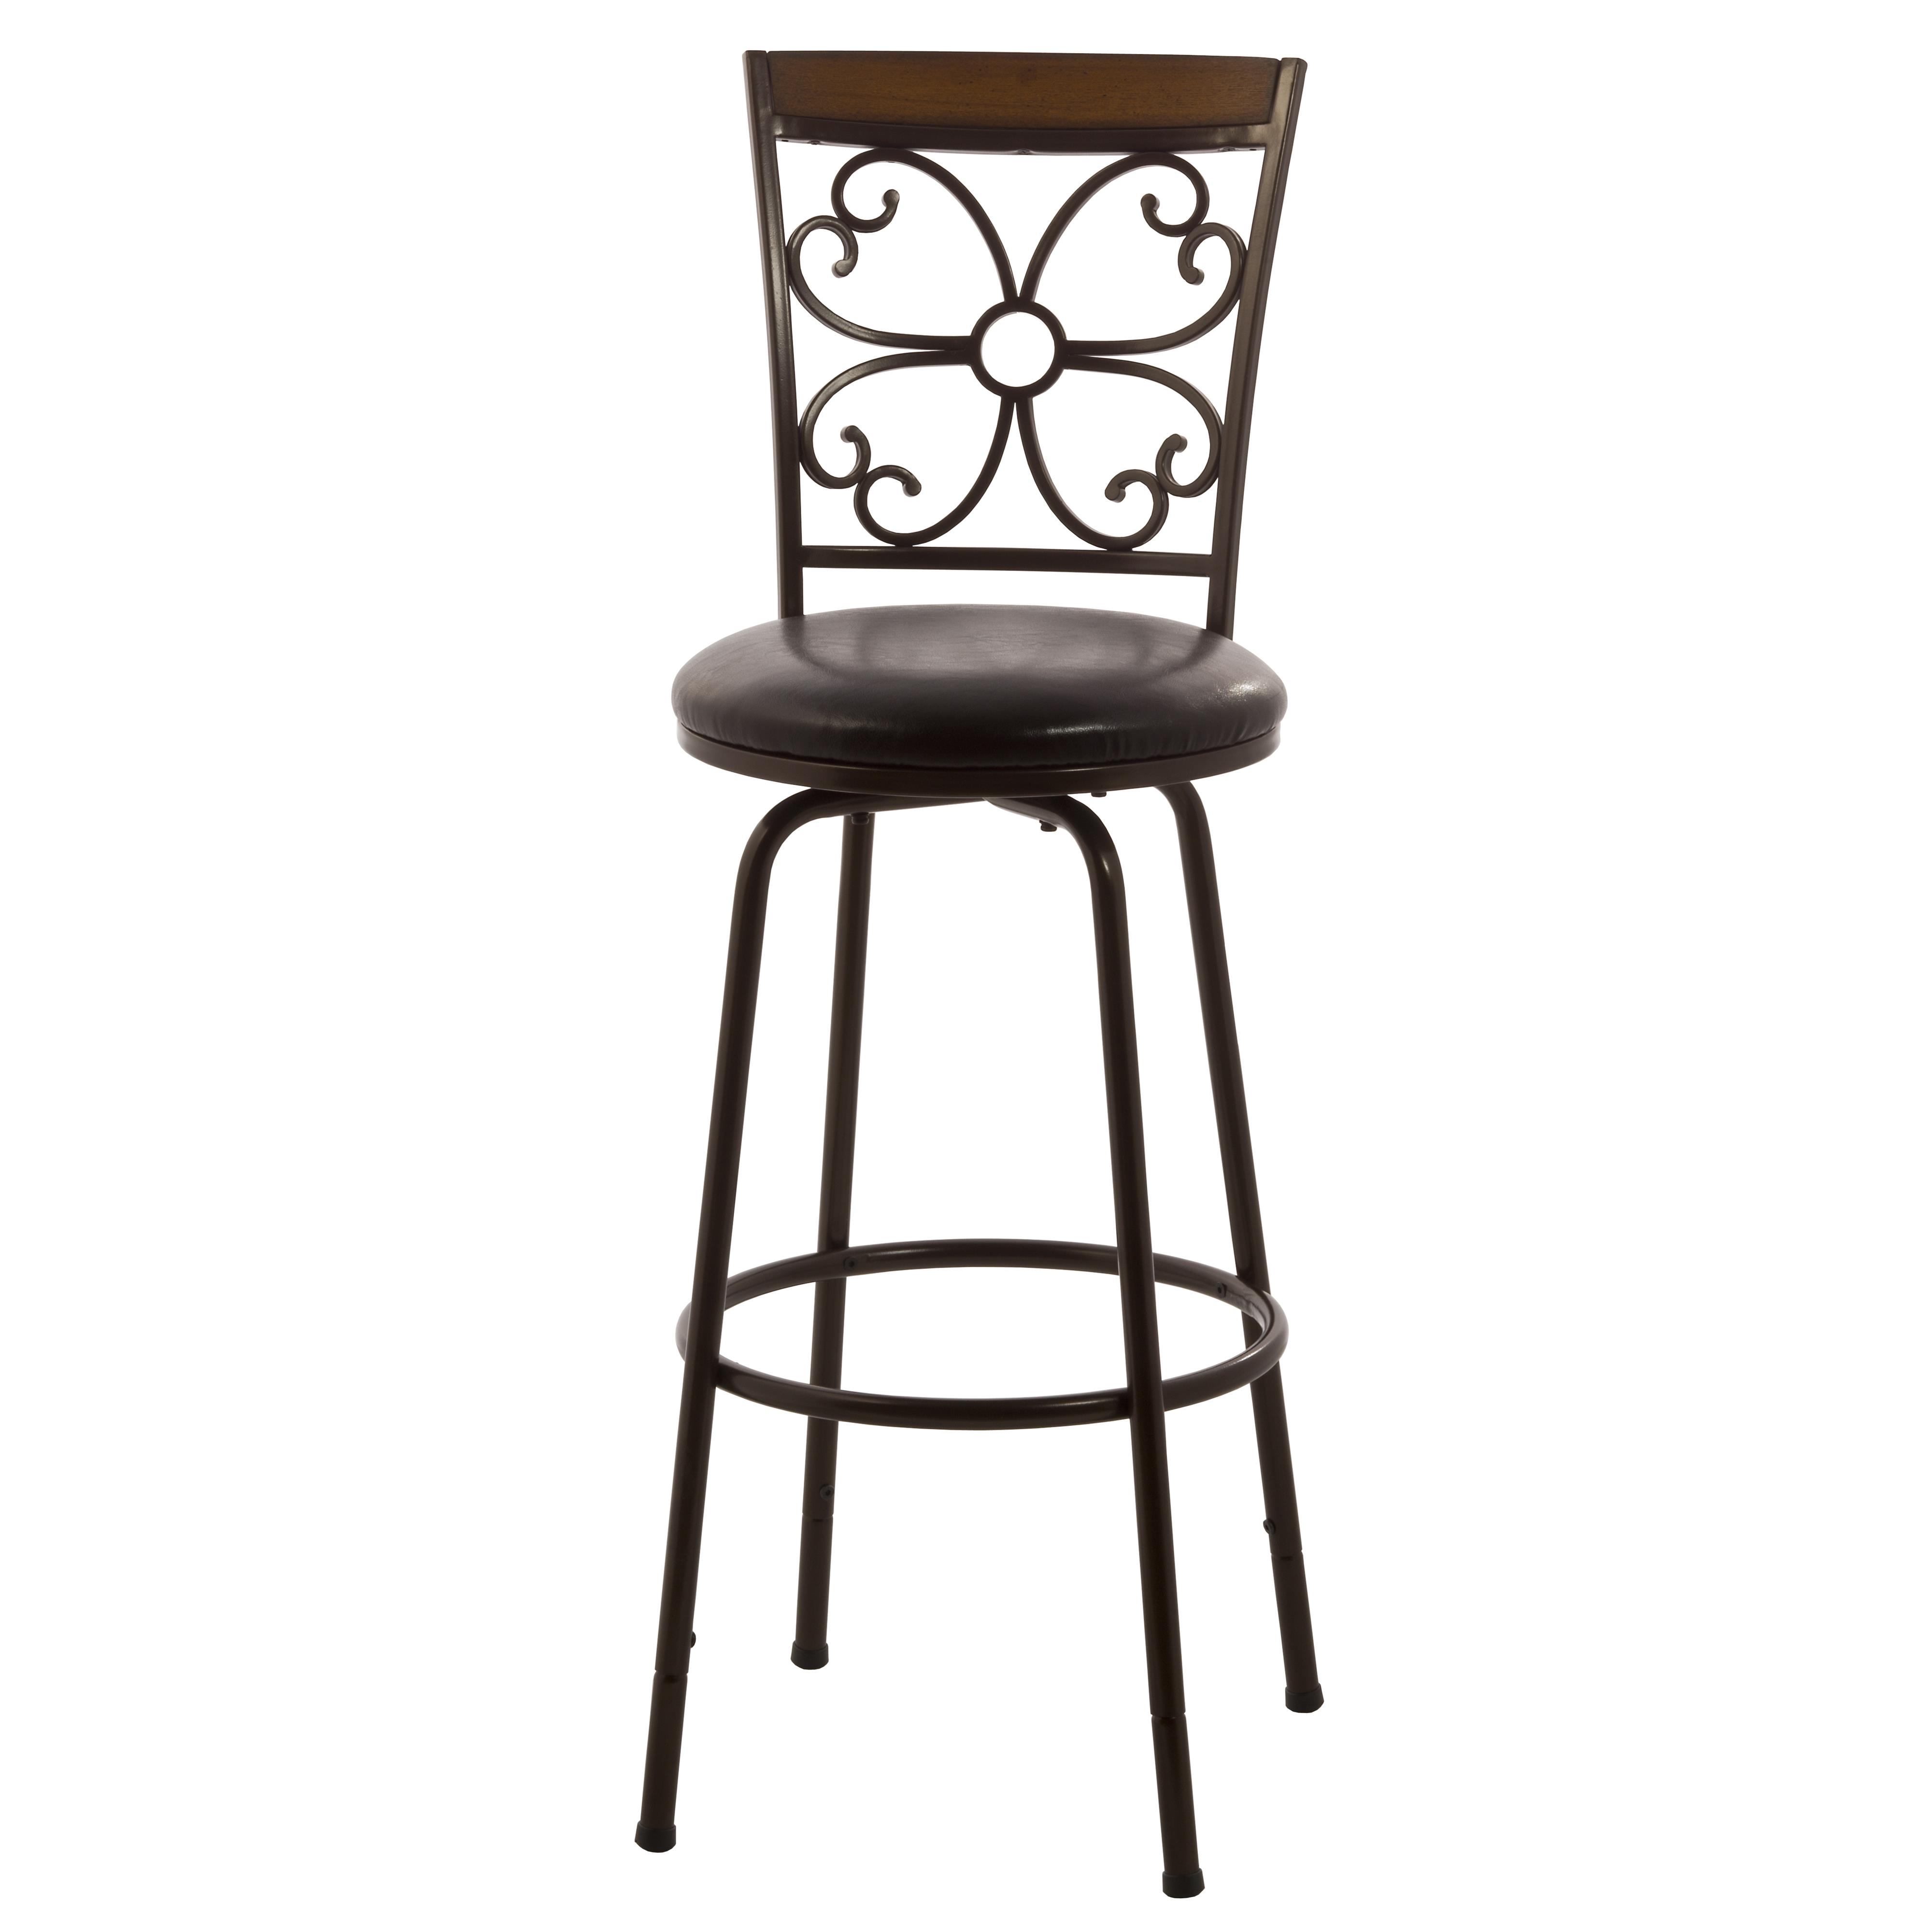 Hillsdale Metal Stools Garrison Swivel Counter/ Bar Stool   Item Number:  5431 830